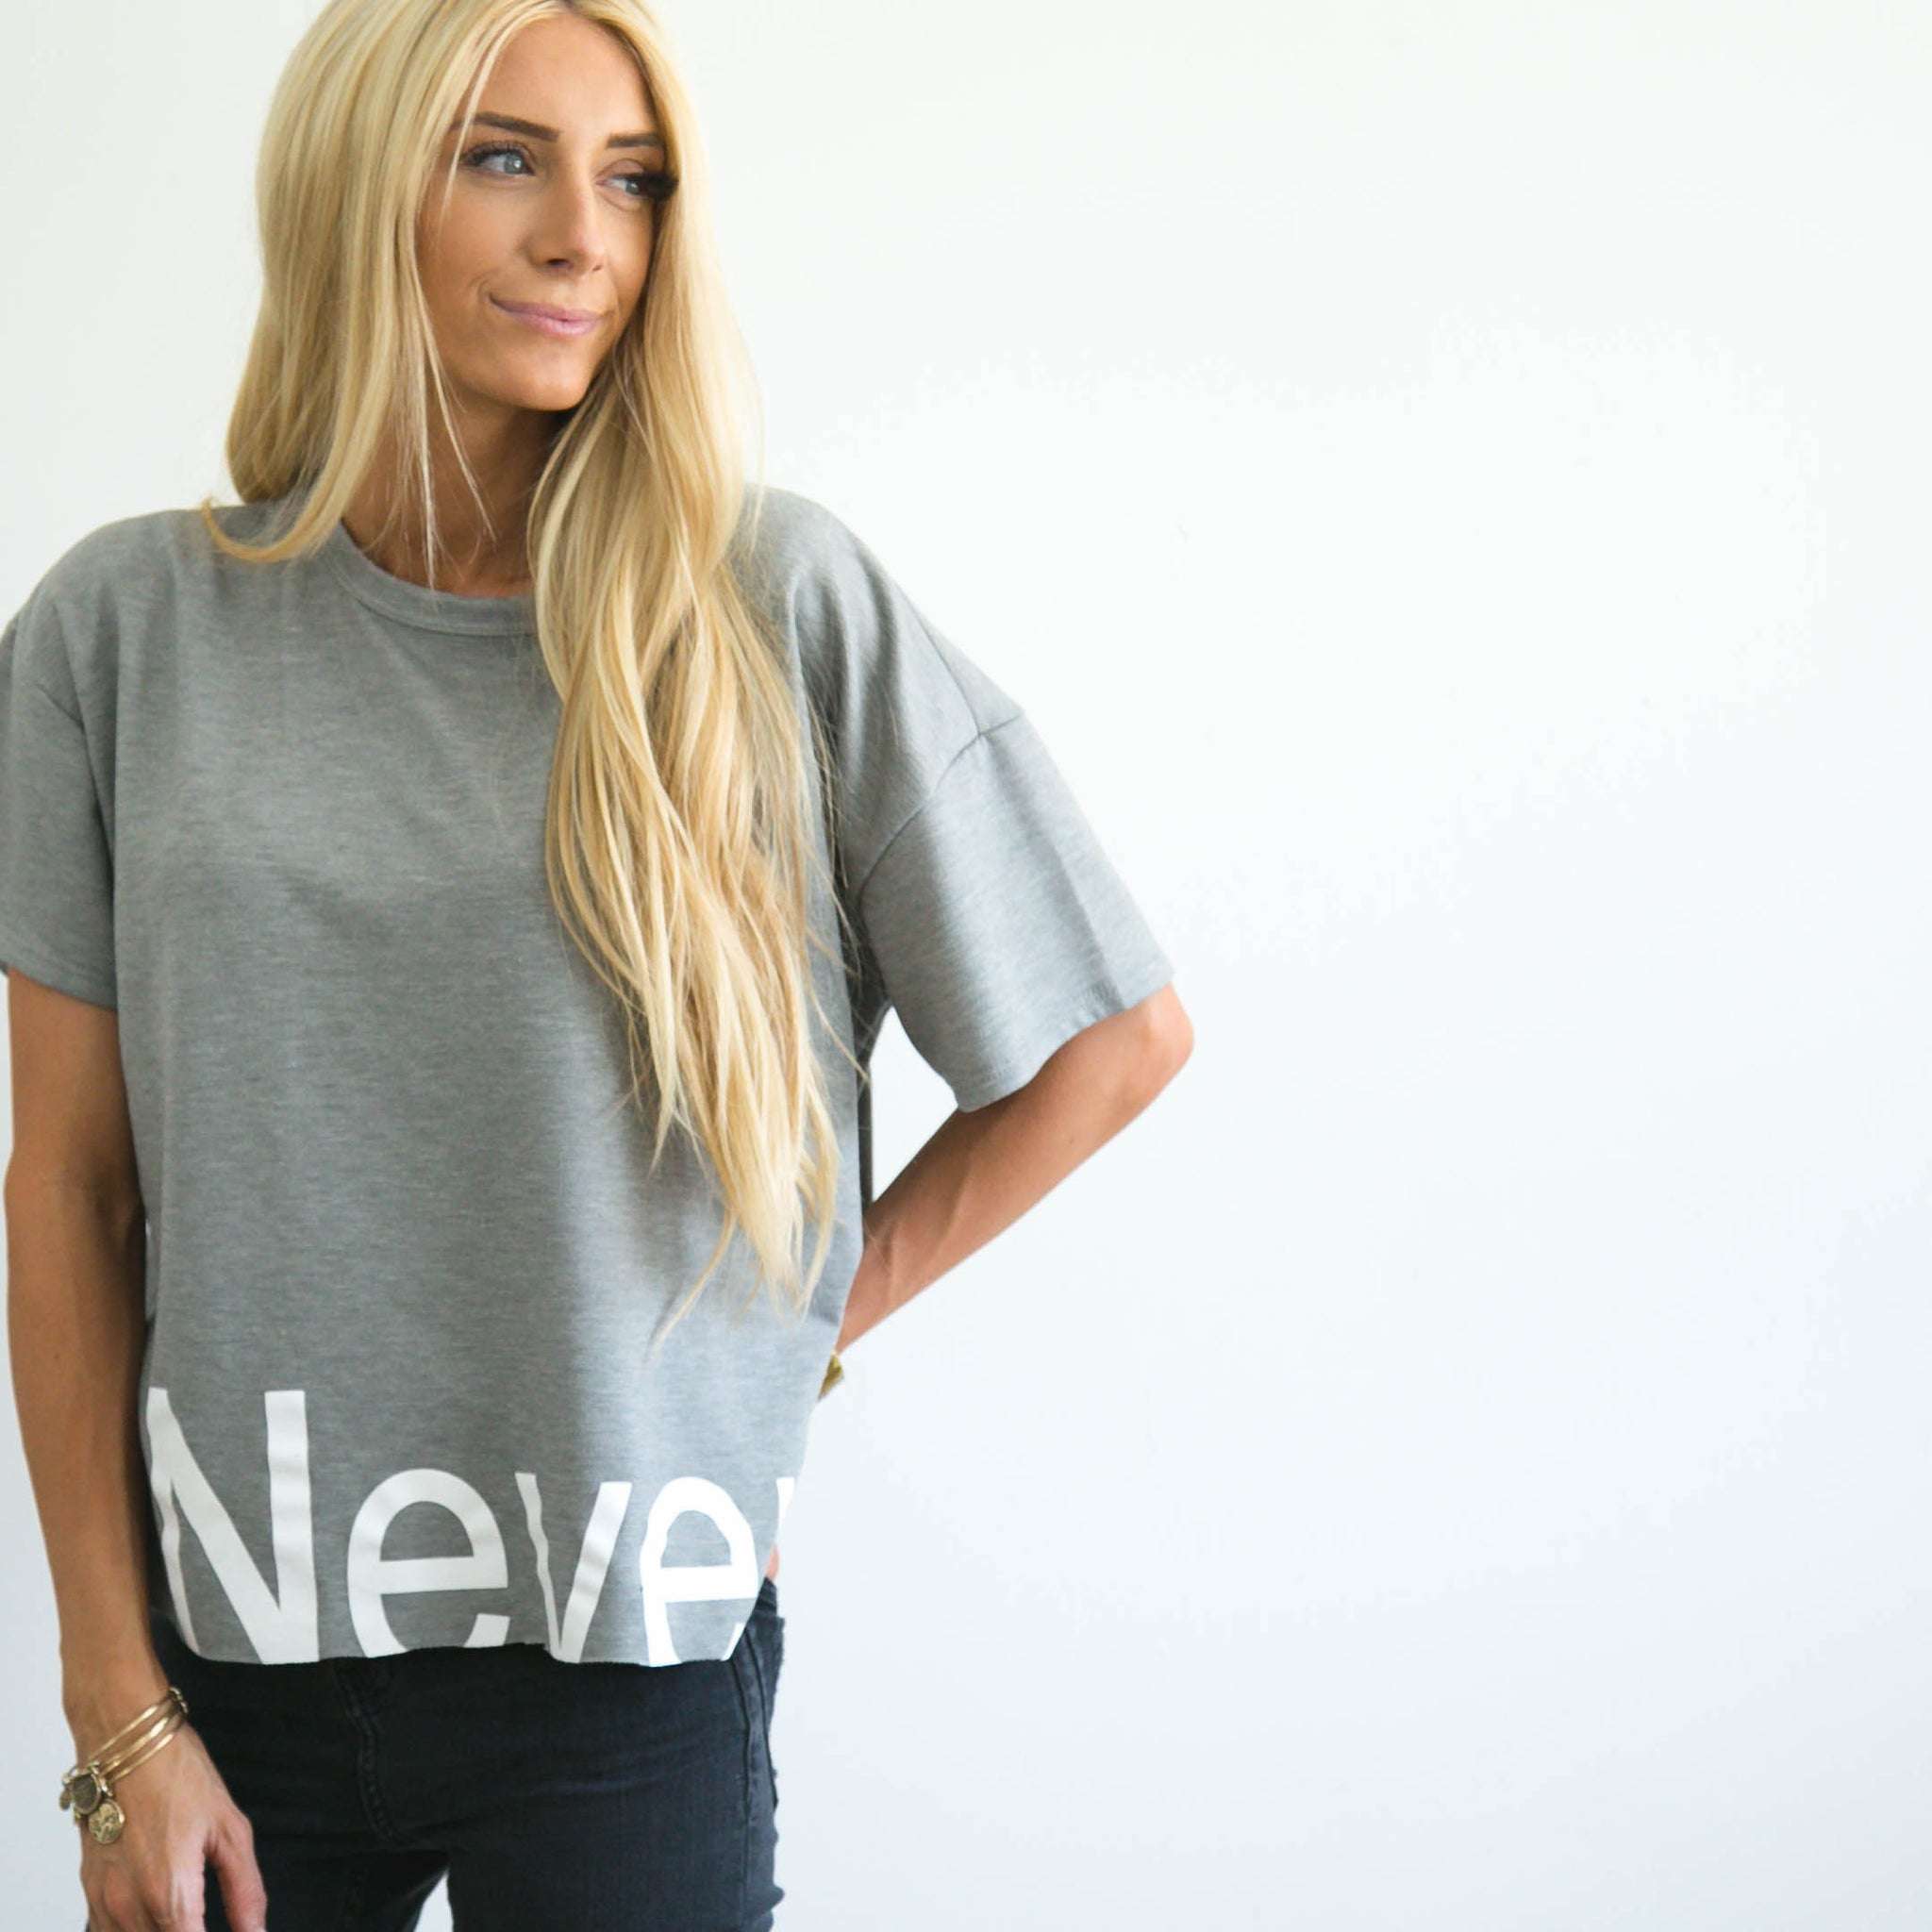 Never Tee in Grey